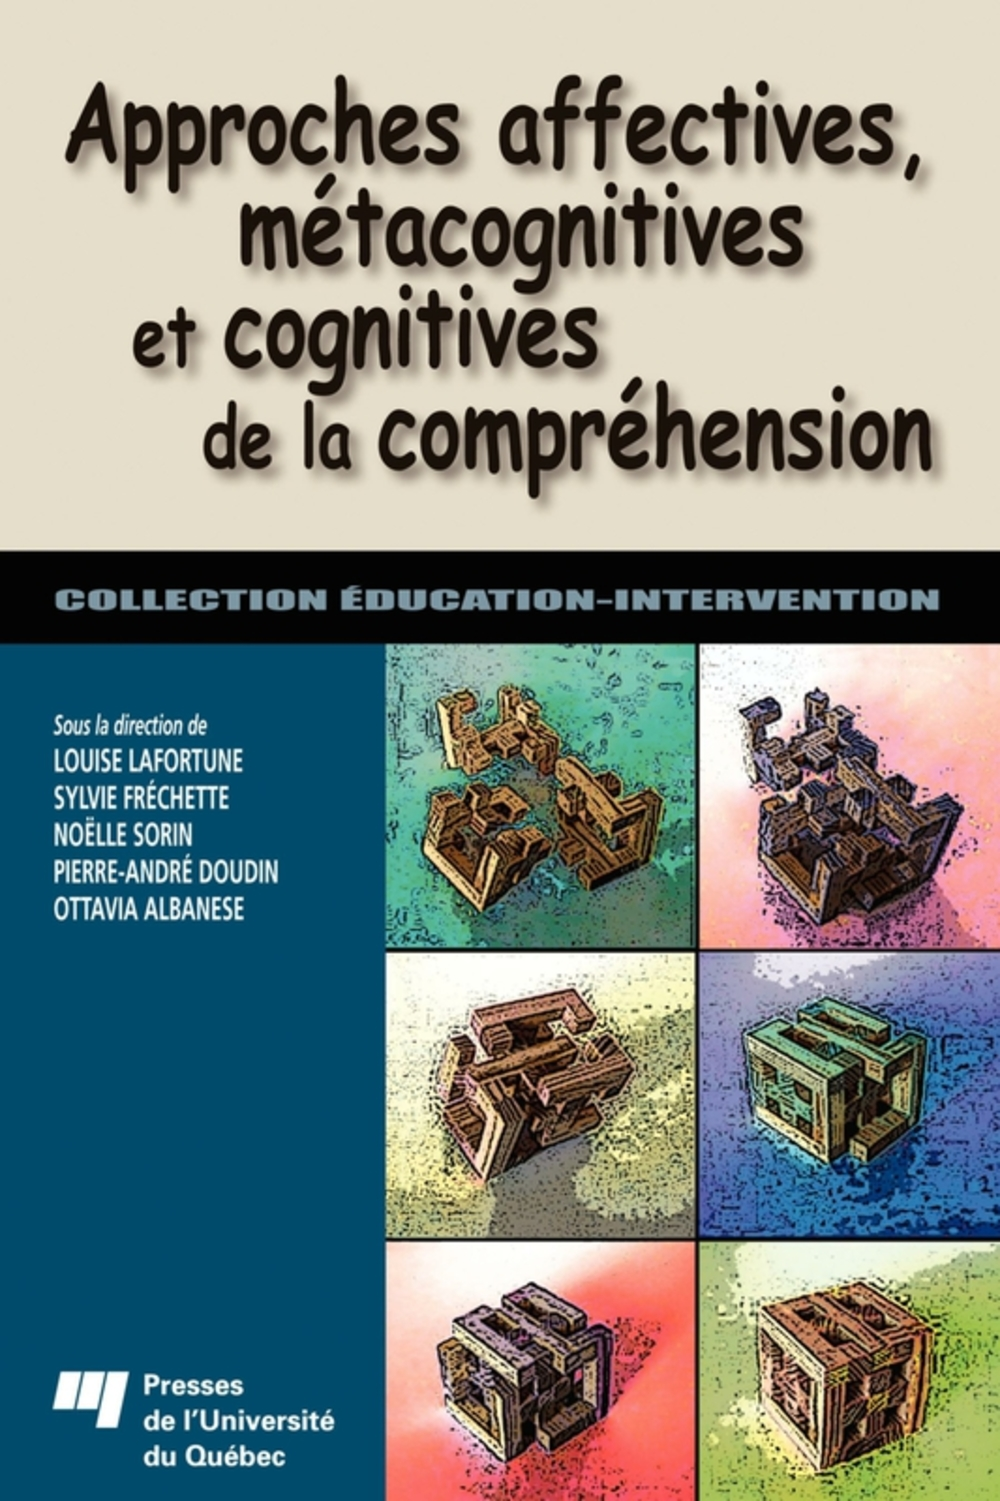 Approches affectives, métacognitives et cognitives de la compréhension